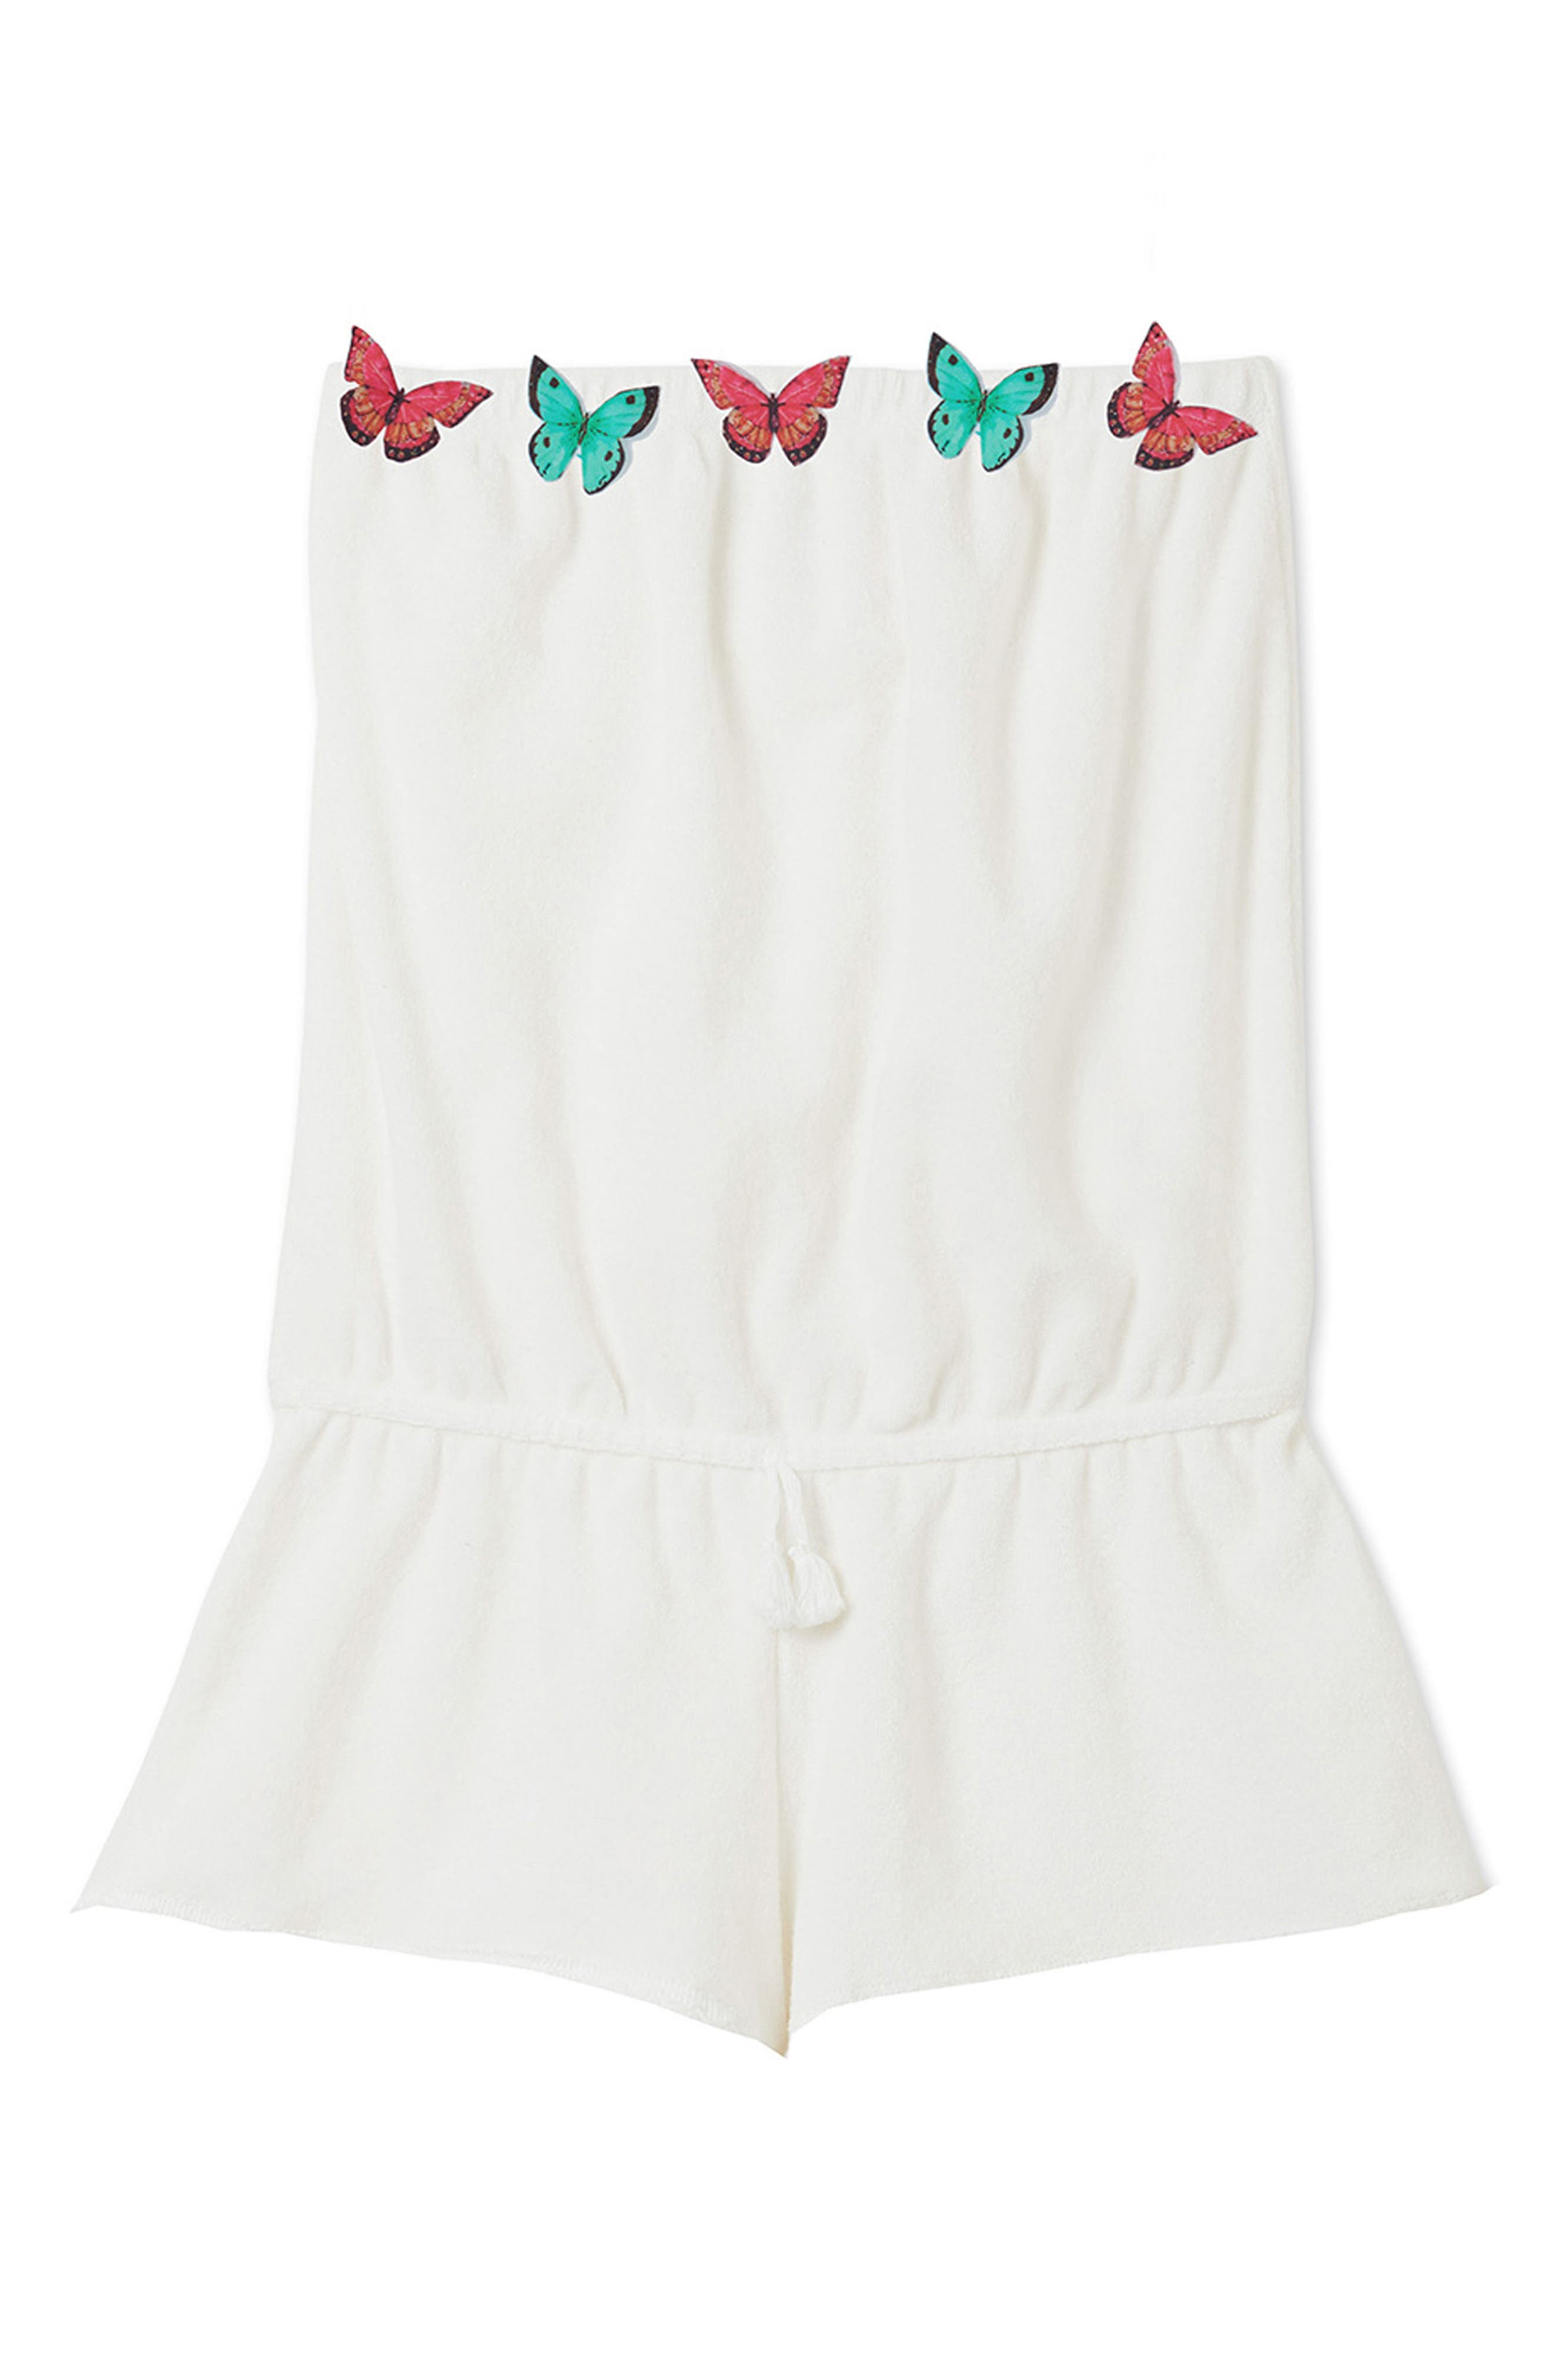 Main Image - Stella Cove Butterfly Strapless Cover-Up Romper (Toddler Girls & Little Girls)